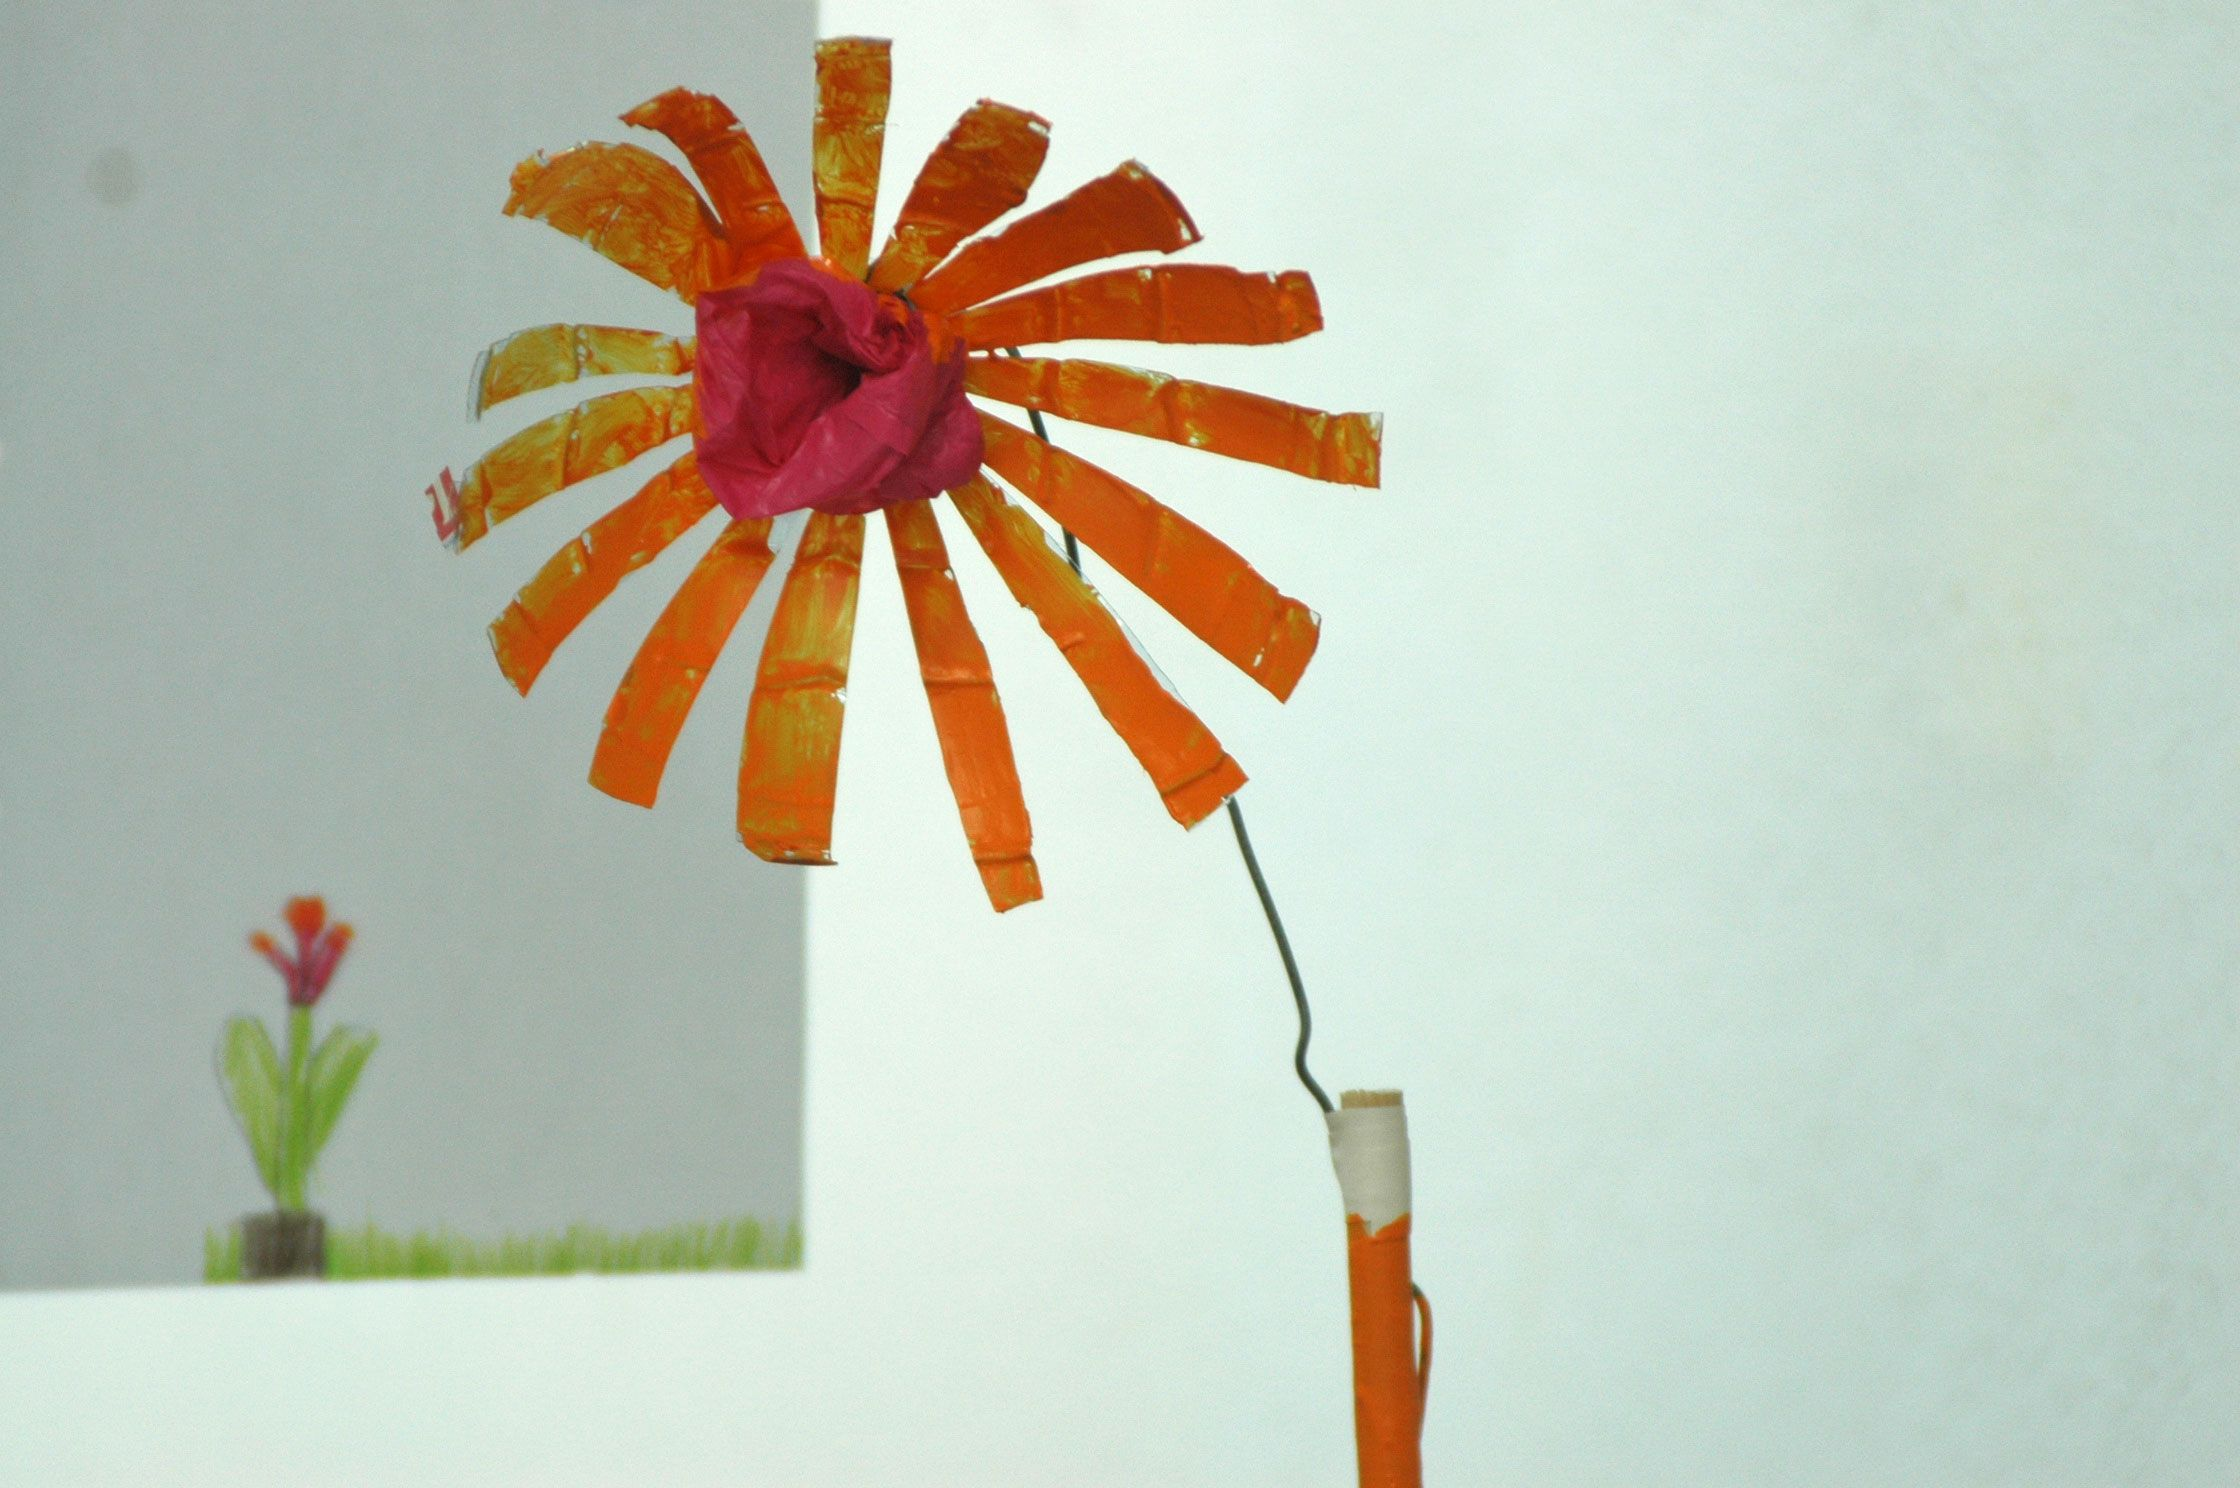 upcycling-flowers  art project with children